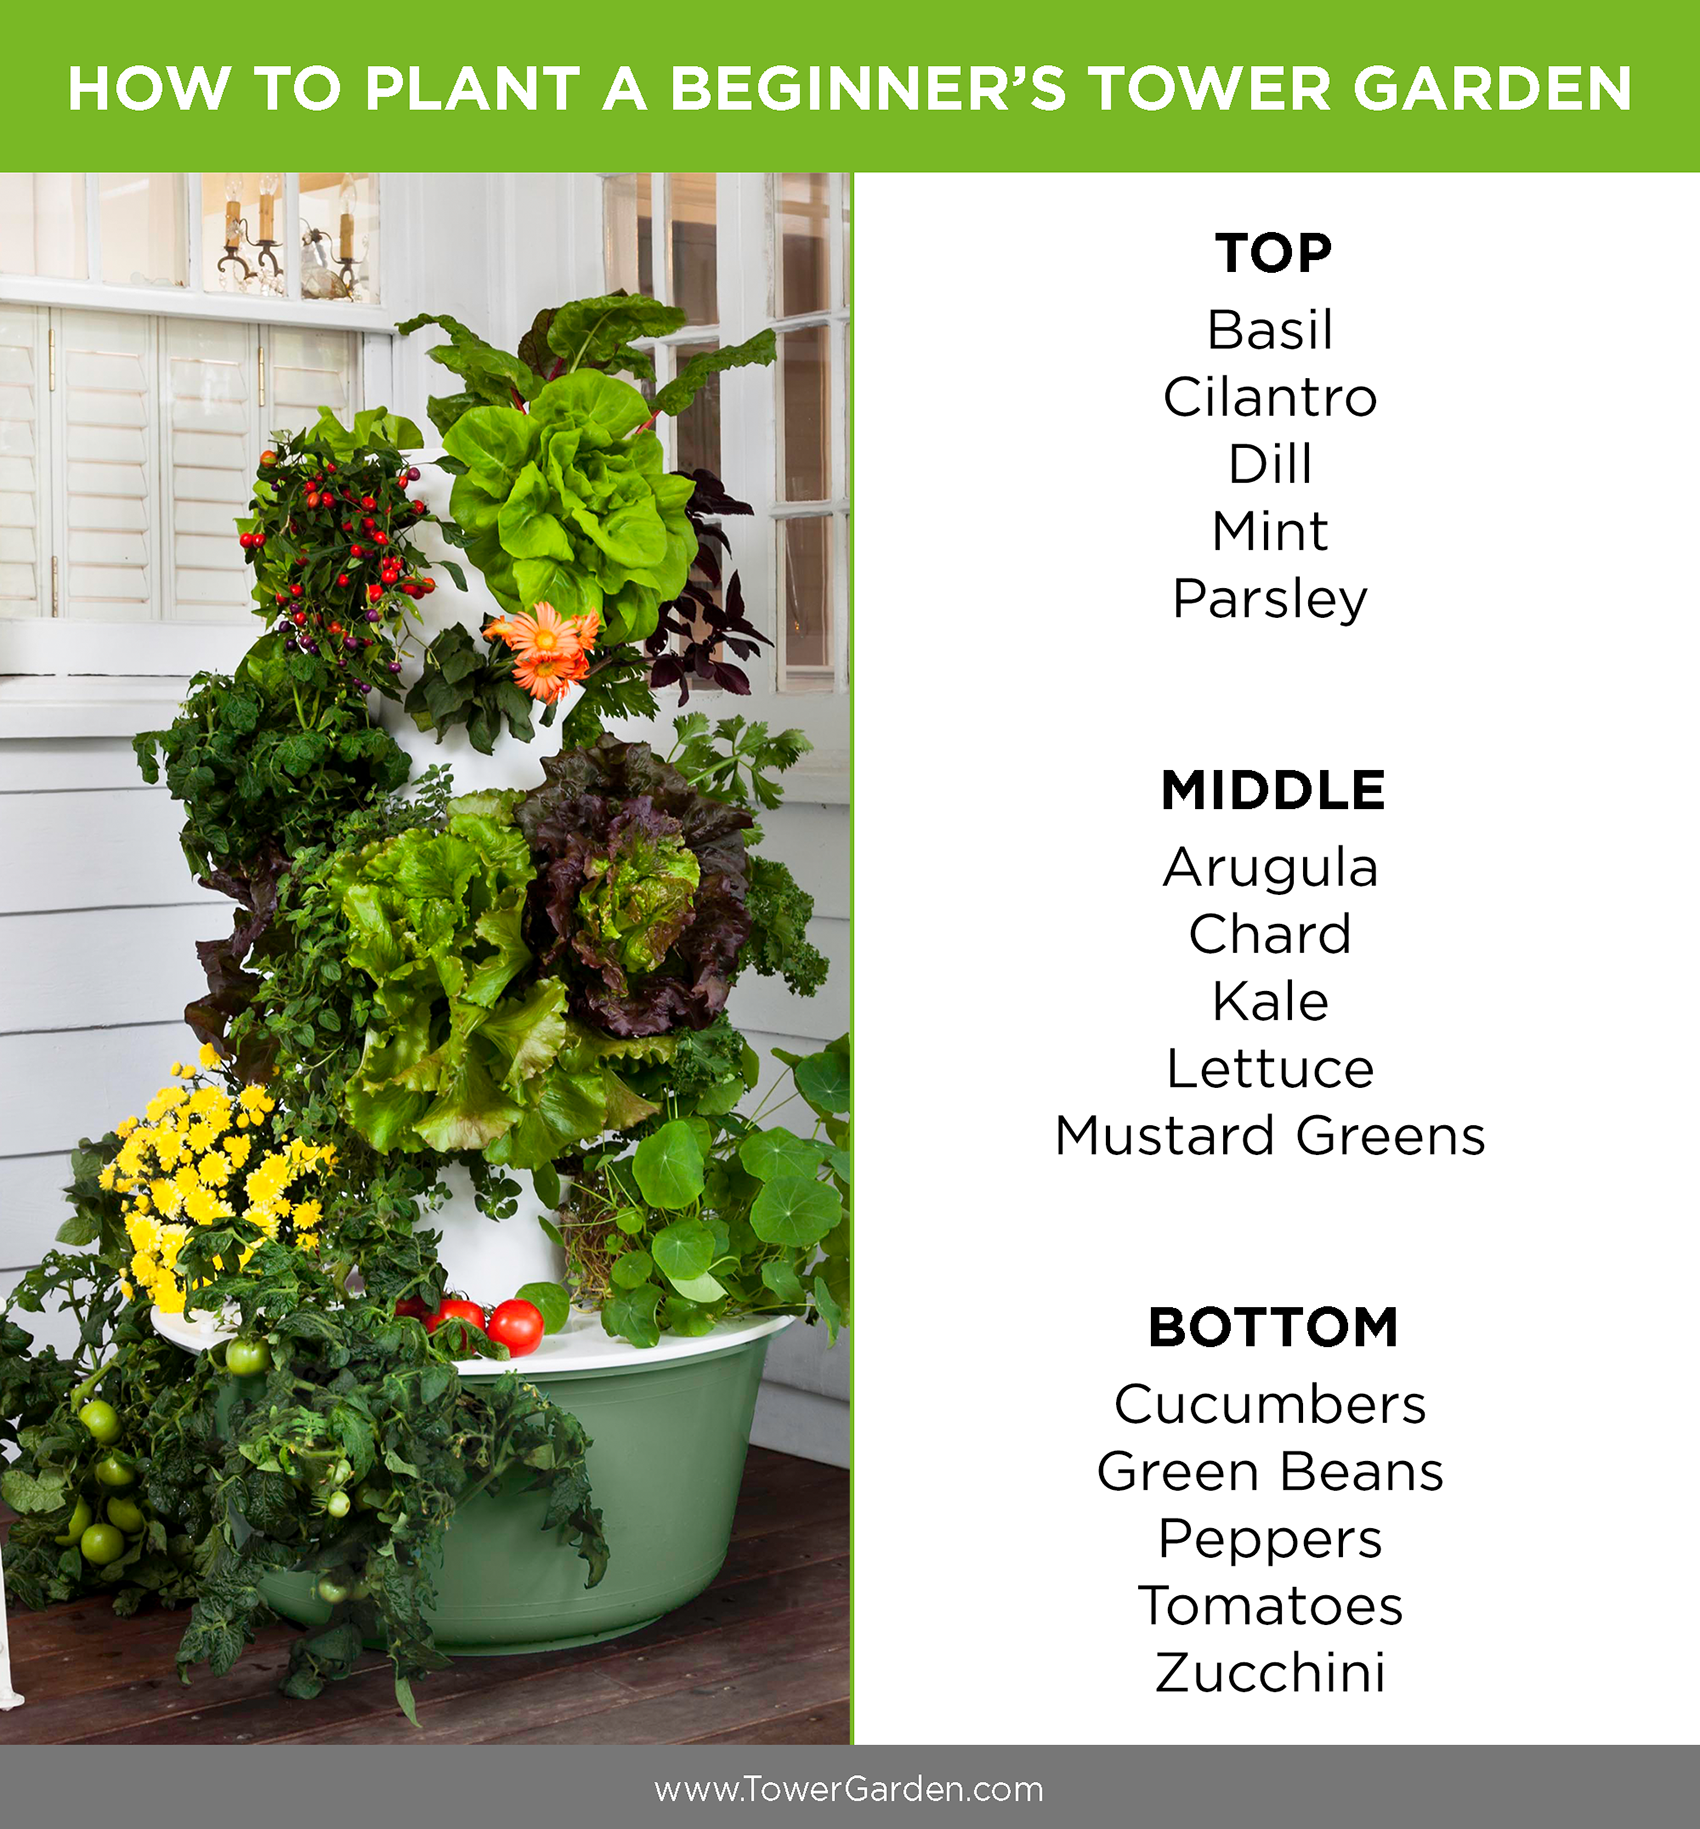 beginner tower garden planting plan aeroponic no dirt grow veggies and fruits with no tilling or preparing soil i love this because you can grow totally - Tower Garden